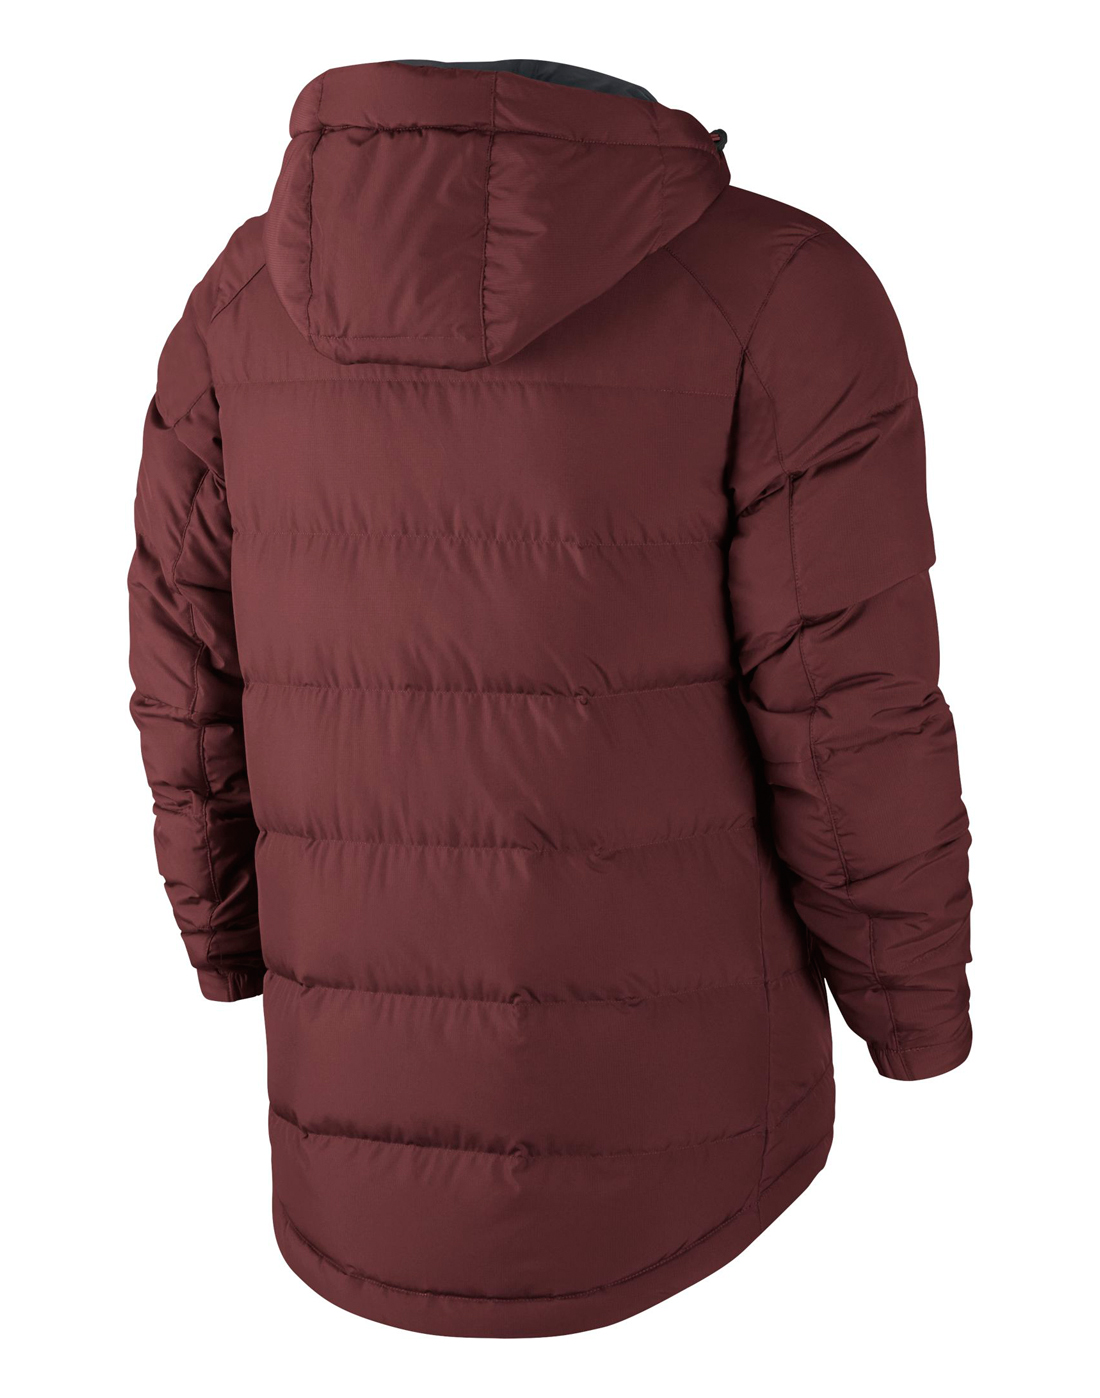 a8928d8922d8 Mens Down Filled Hooded Jacket · Mens Down Filled Hooded Jacket